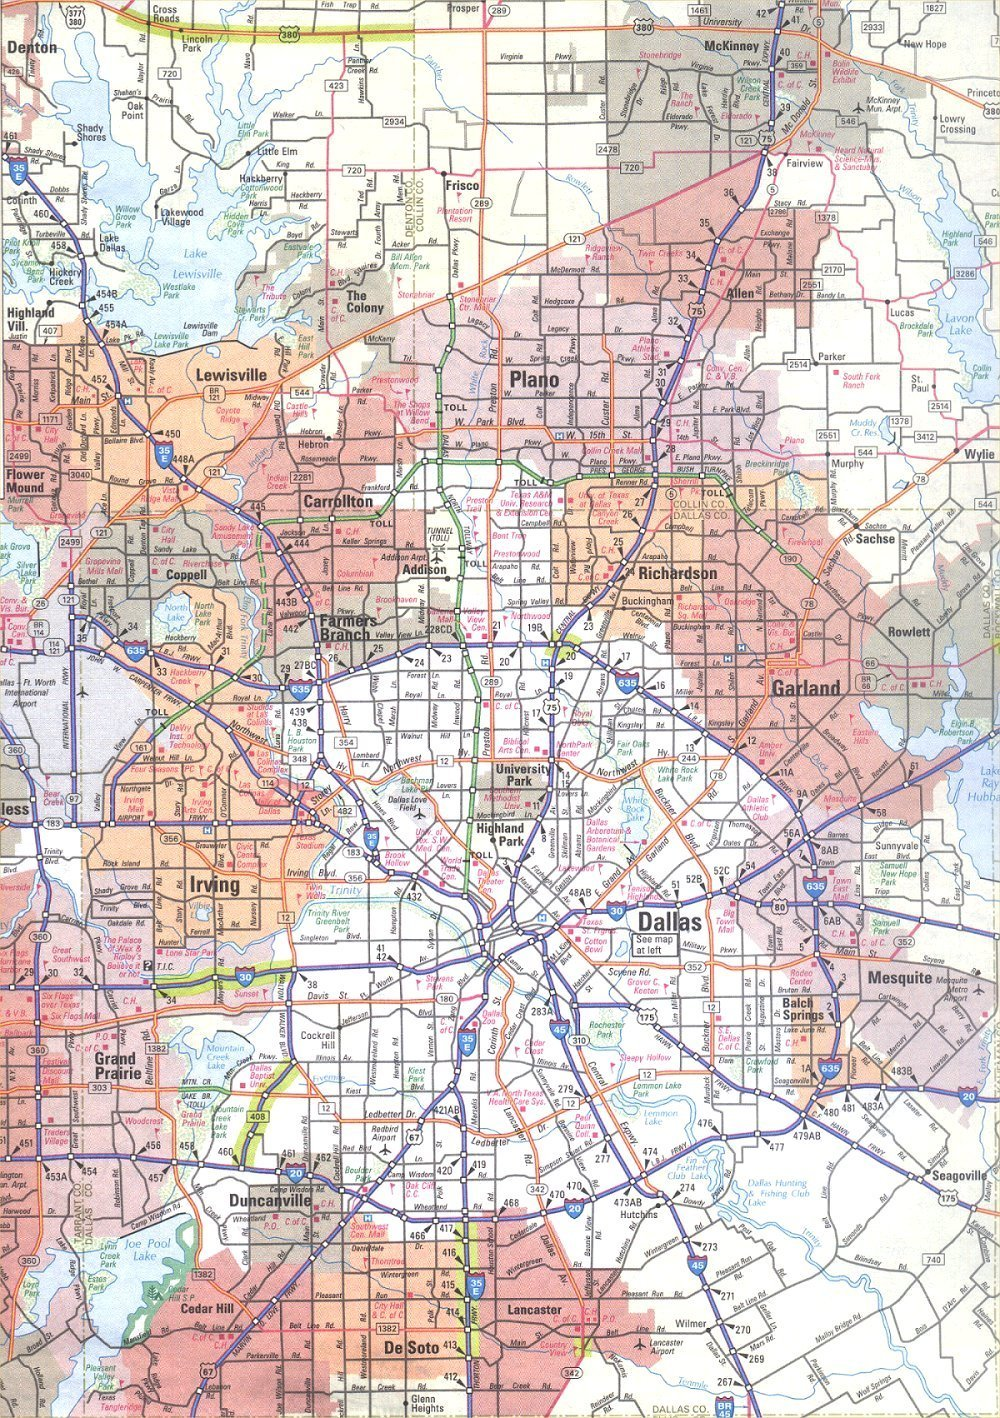 Map of Dallas Texas